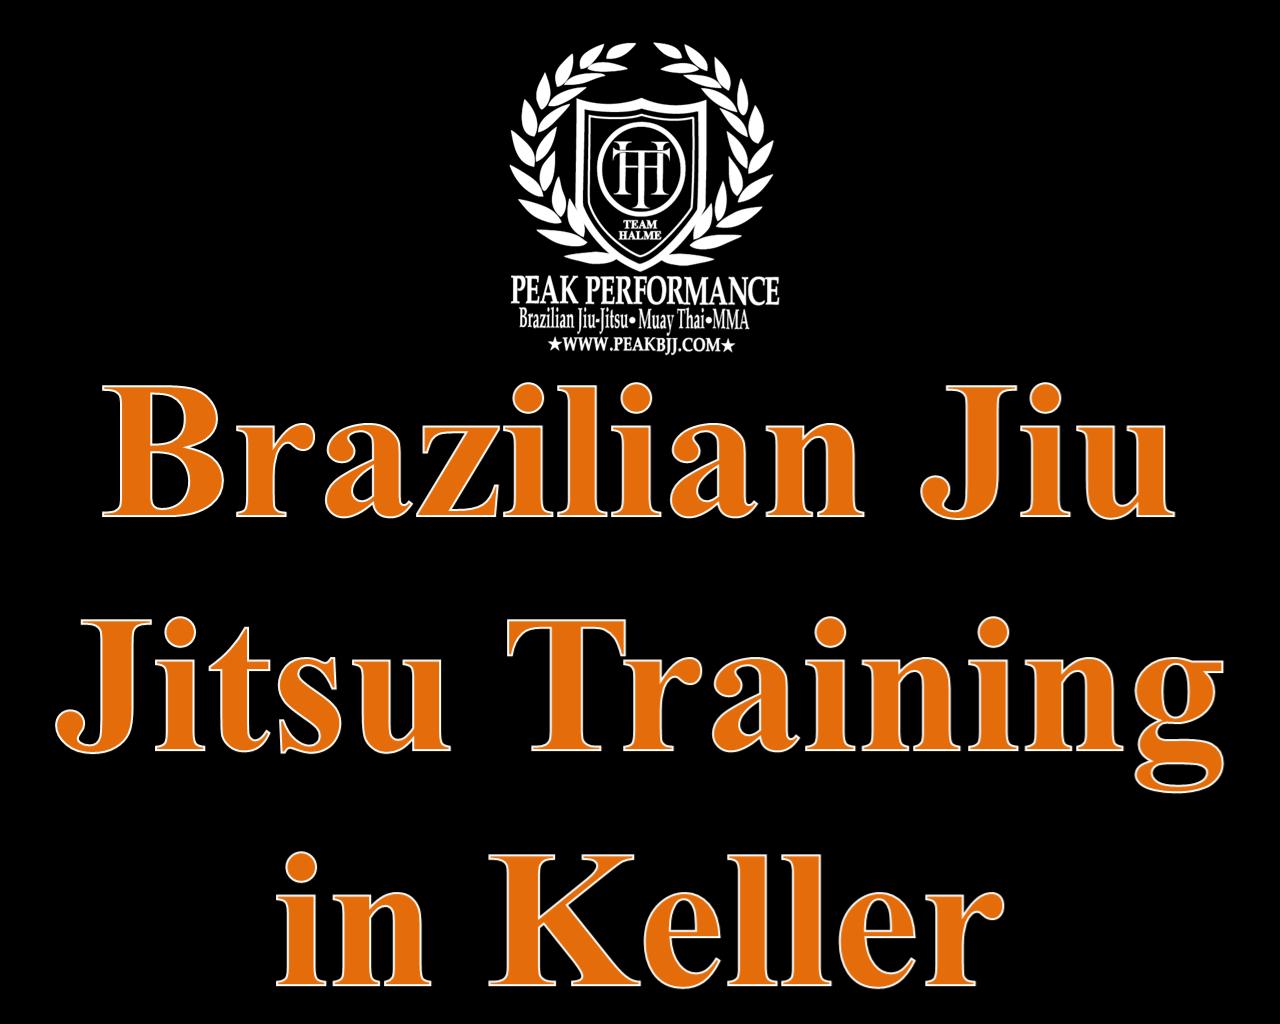 Brazilian Jiu Jitsu Training in Keller